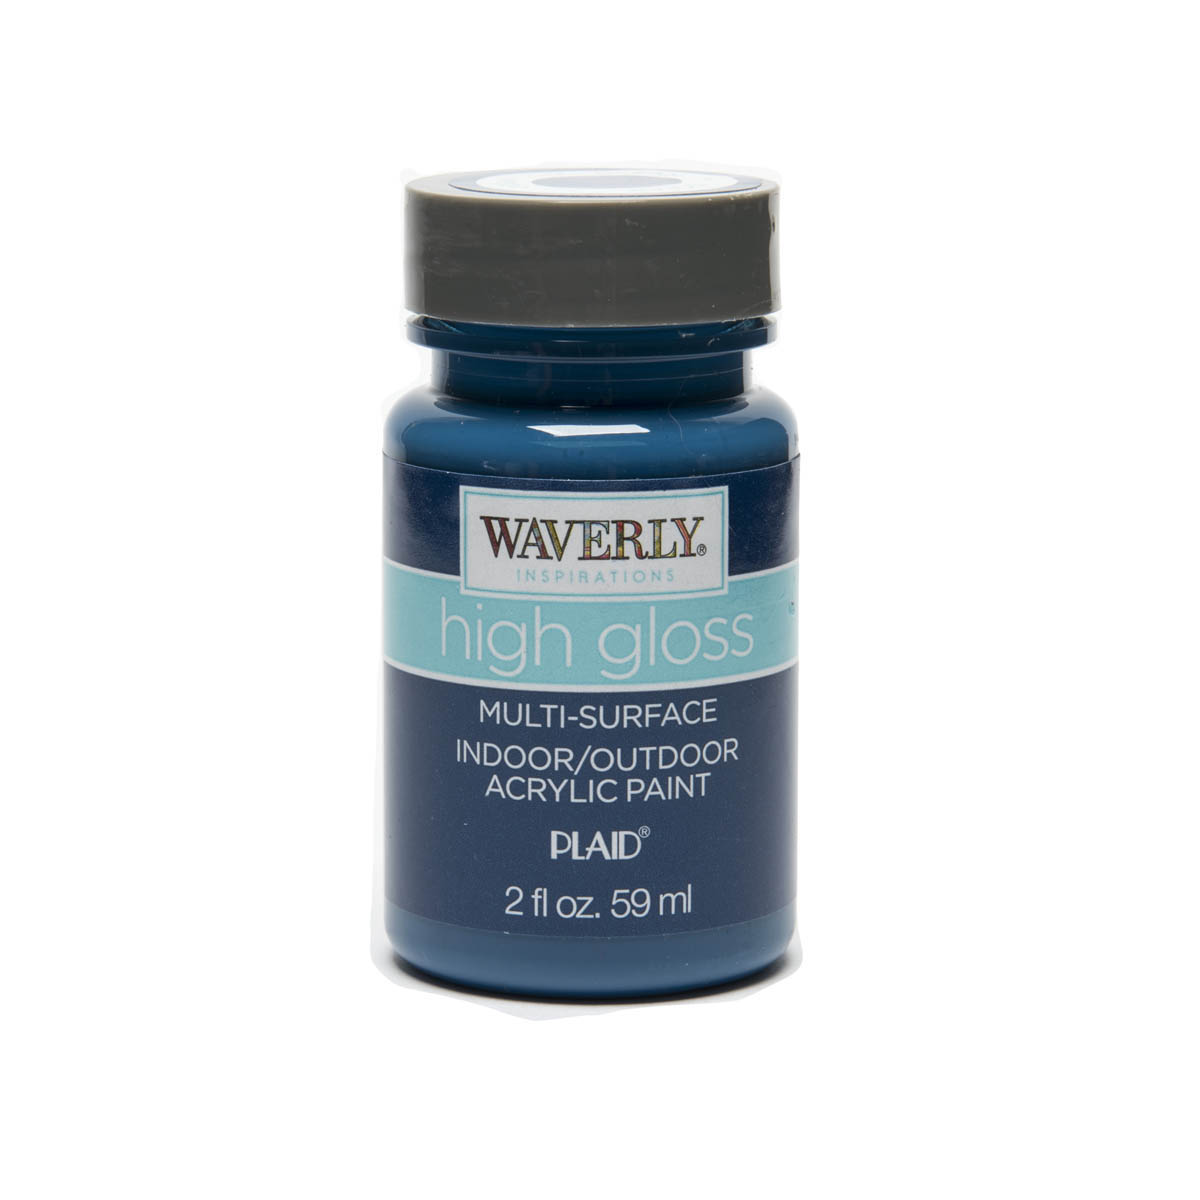 Waverly ® Inspirations High Gloss Multi-Surface Acrylic Paint - Ocean, 2 oz.